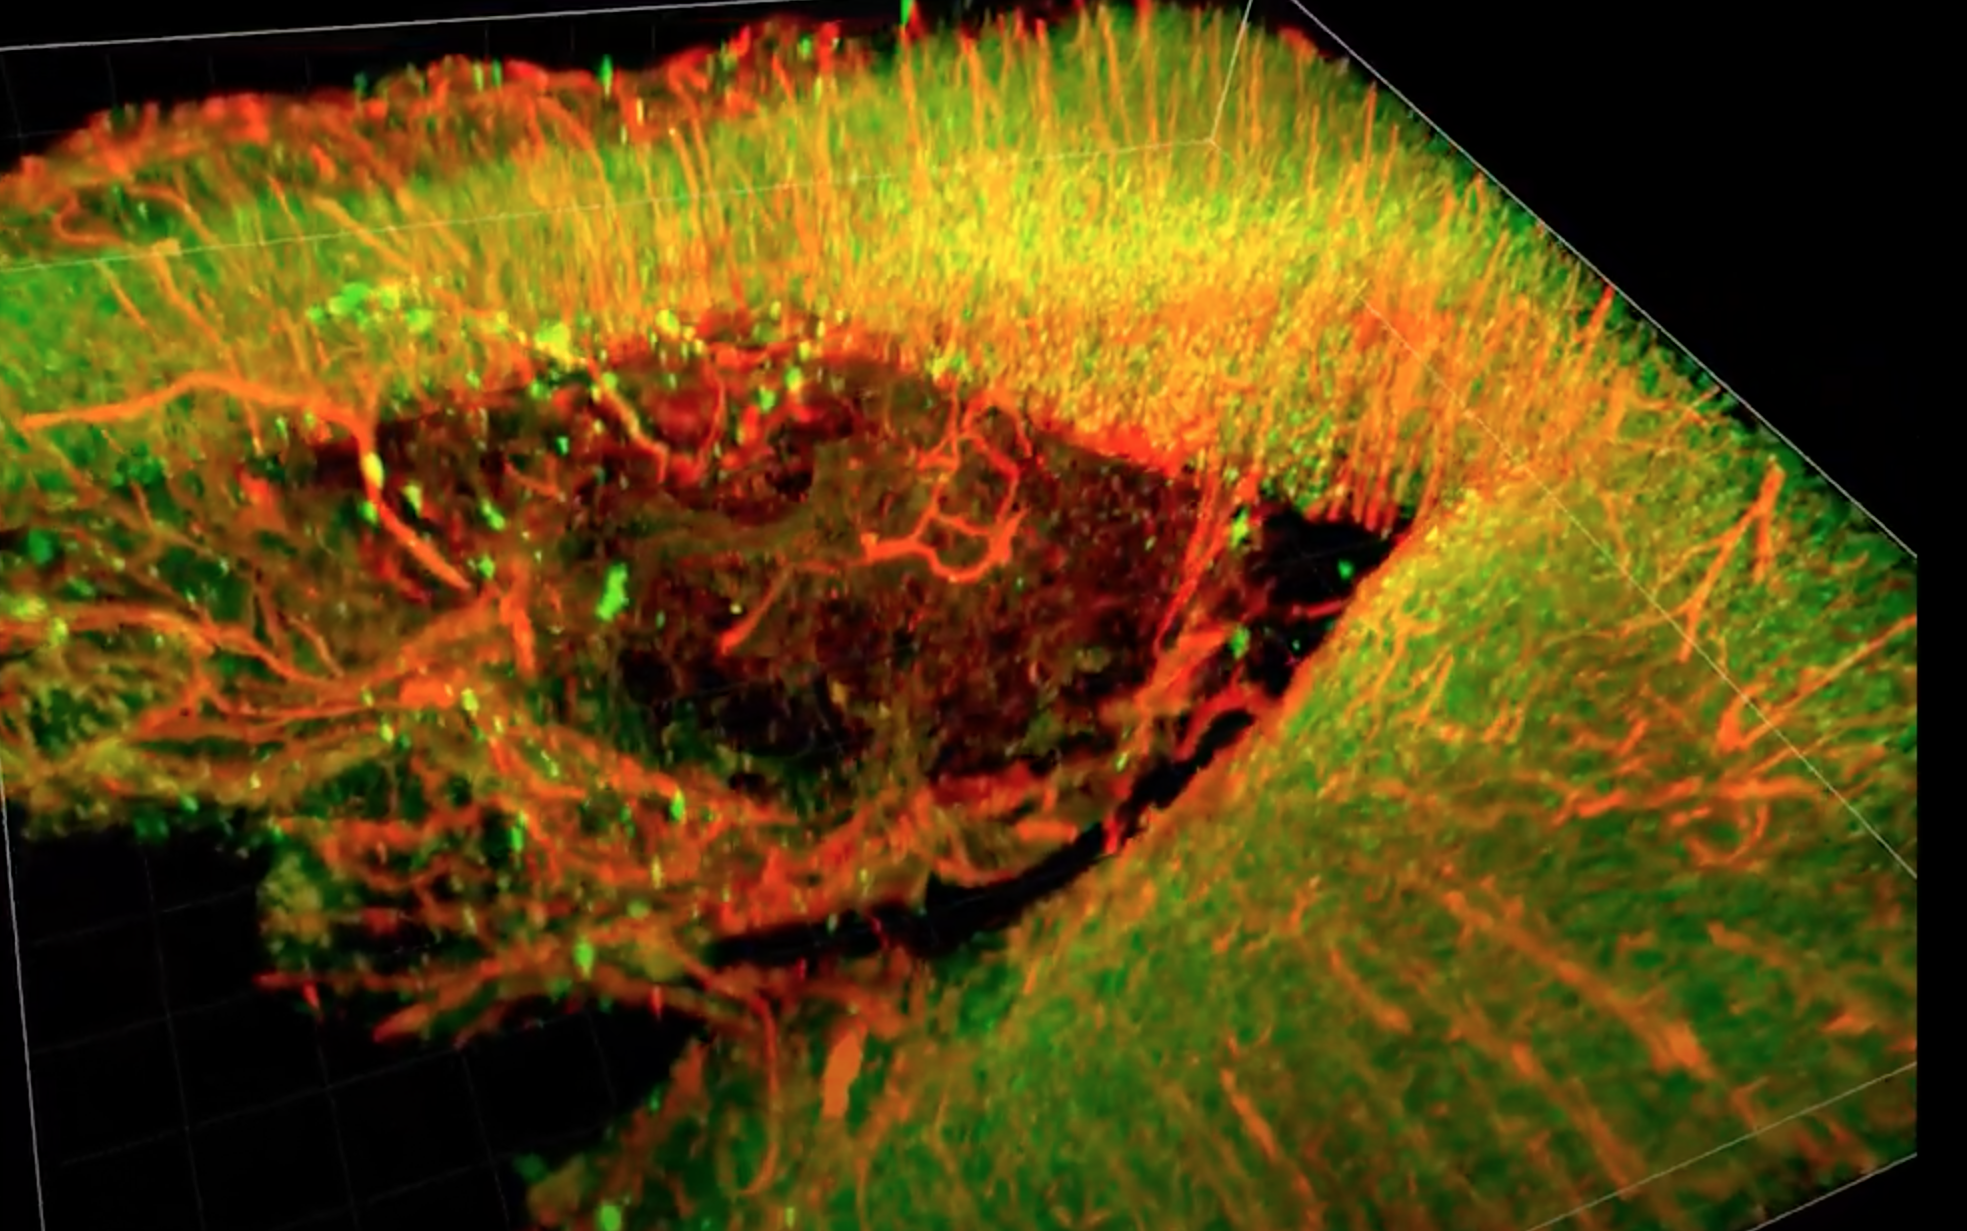 A 3D image of a recovering injured rat brain treated with a newly developed